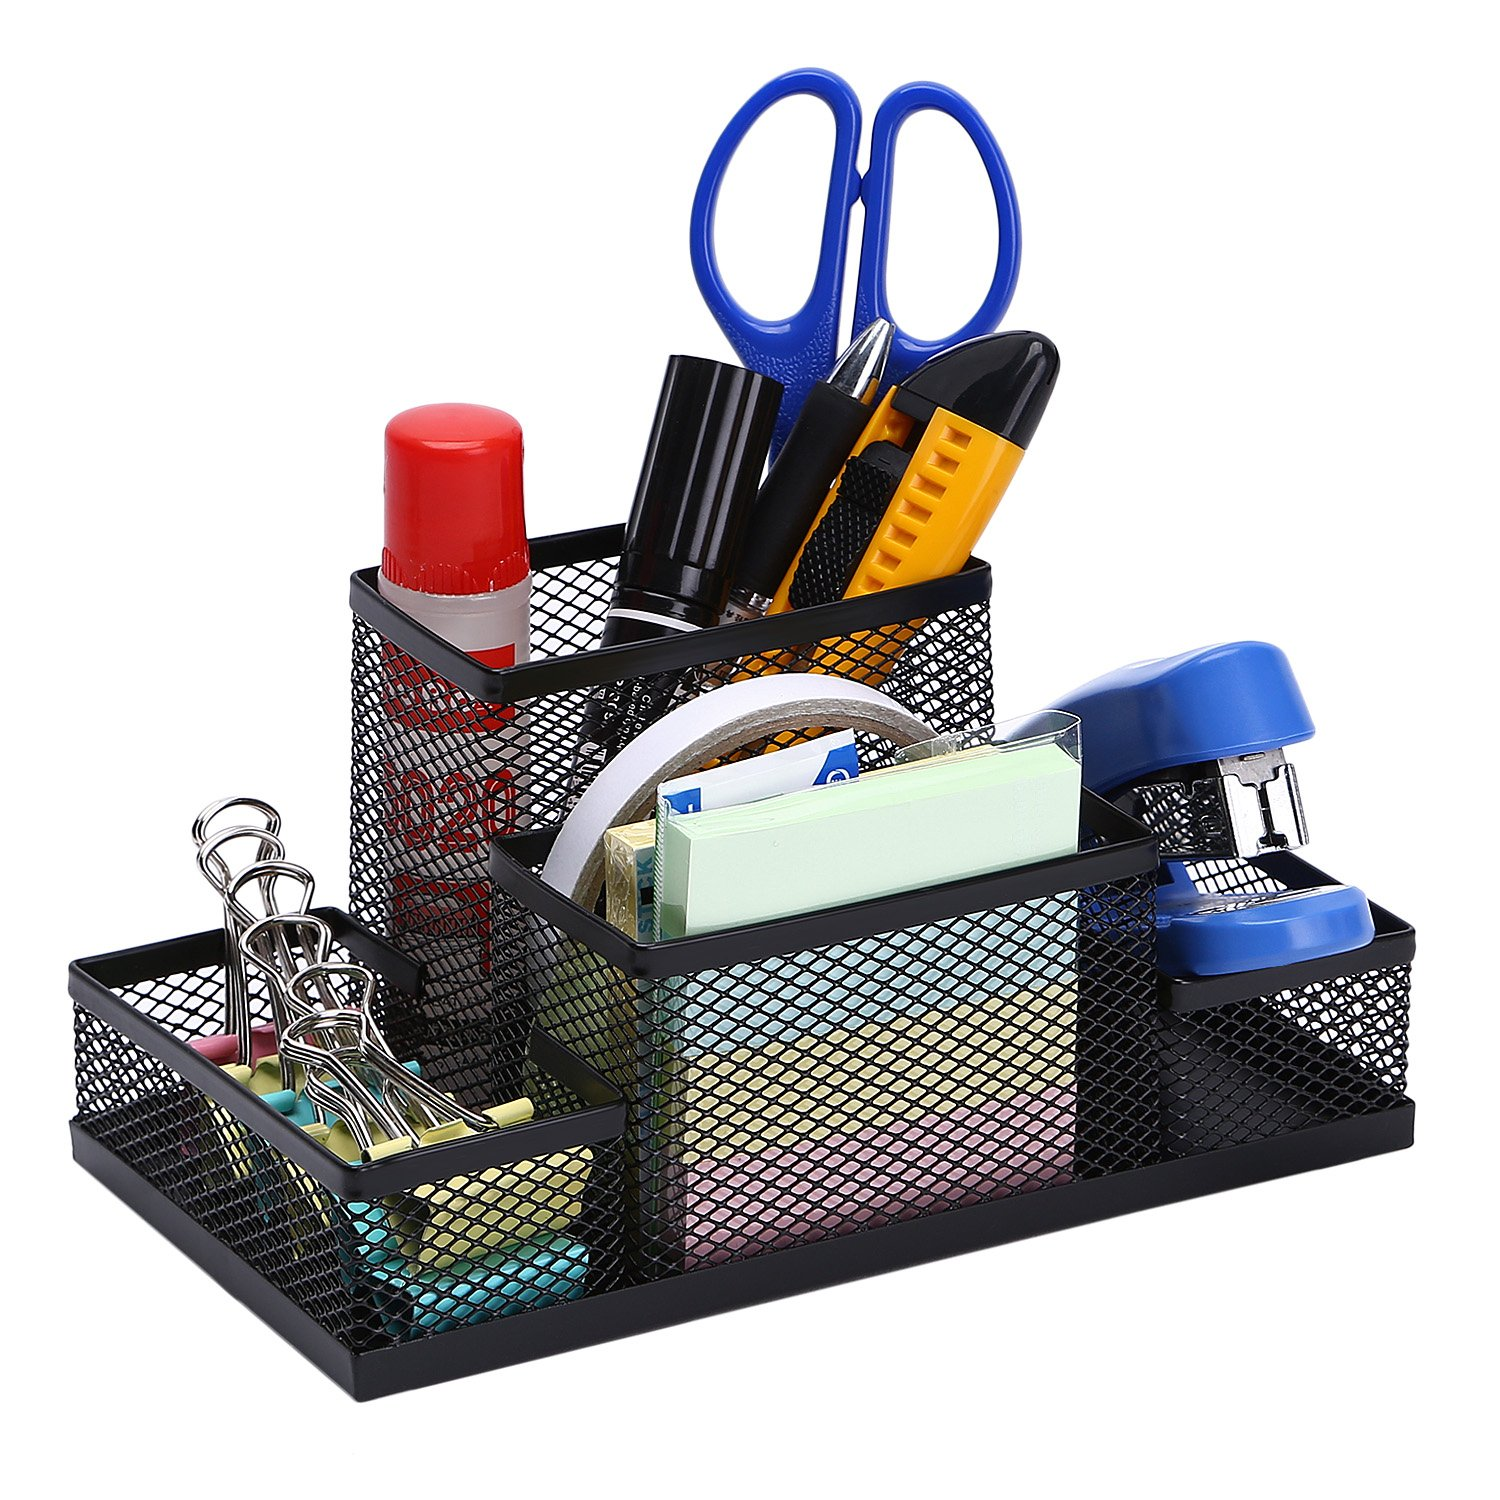 TOROTON Office Supply Caddy, 3 Compartments Mesh Metal Office Desk Organizer Letter Tray with Pen Pencil Holder -Black